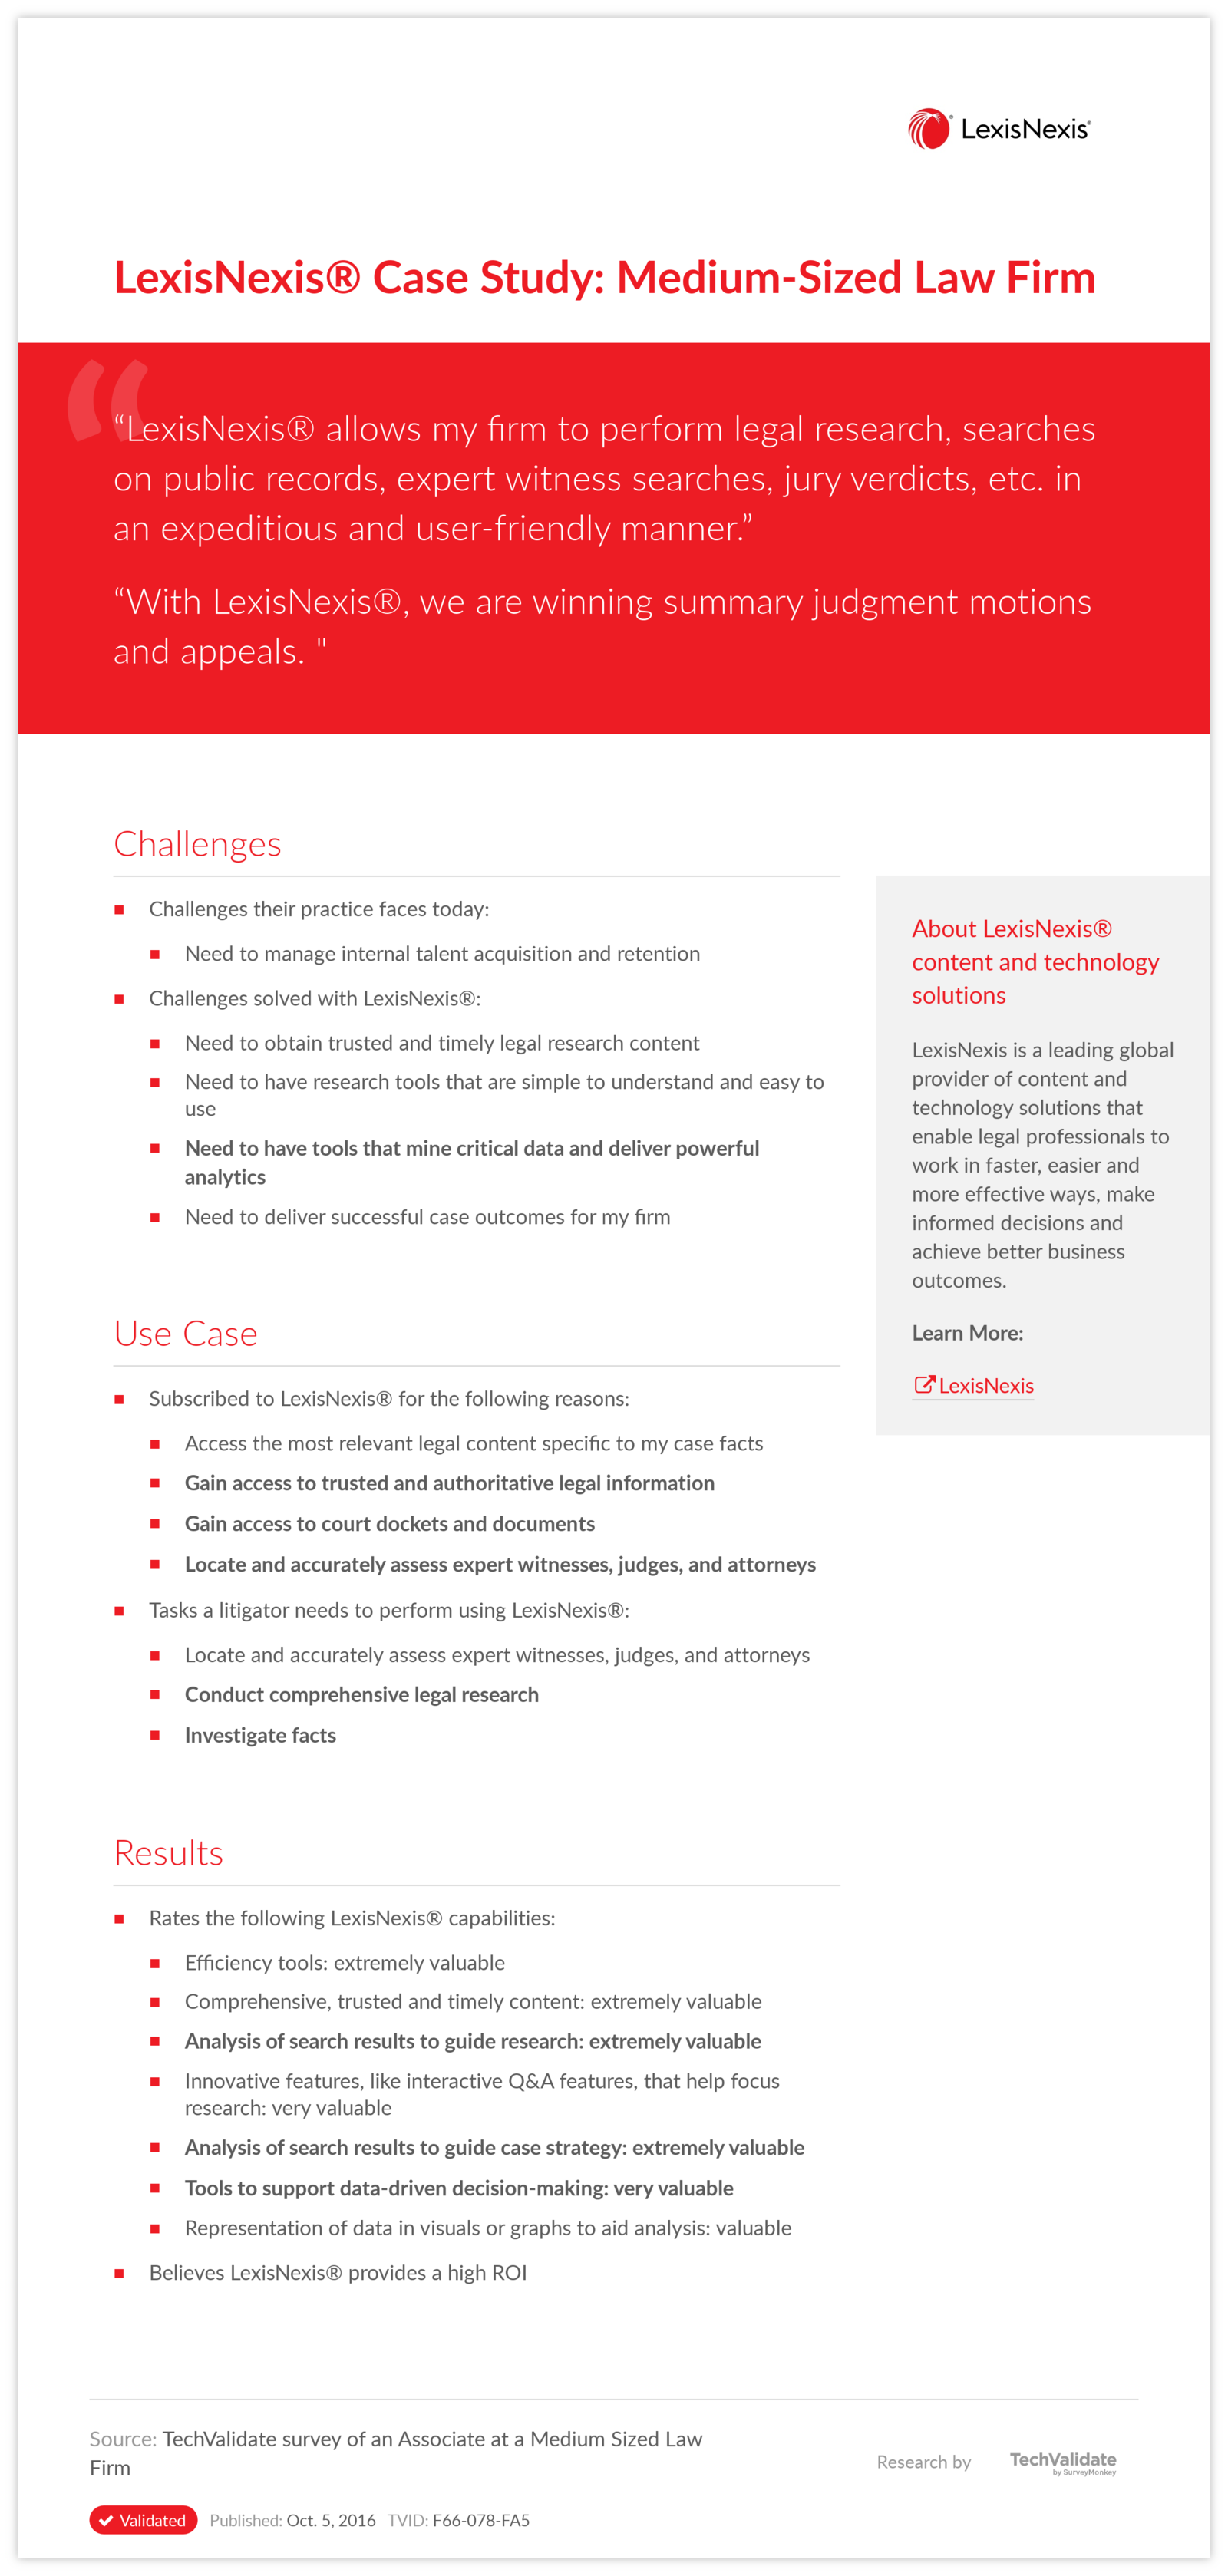 LexisNexis® Case Study: Medium-Sized Law Firm